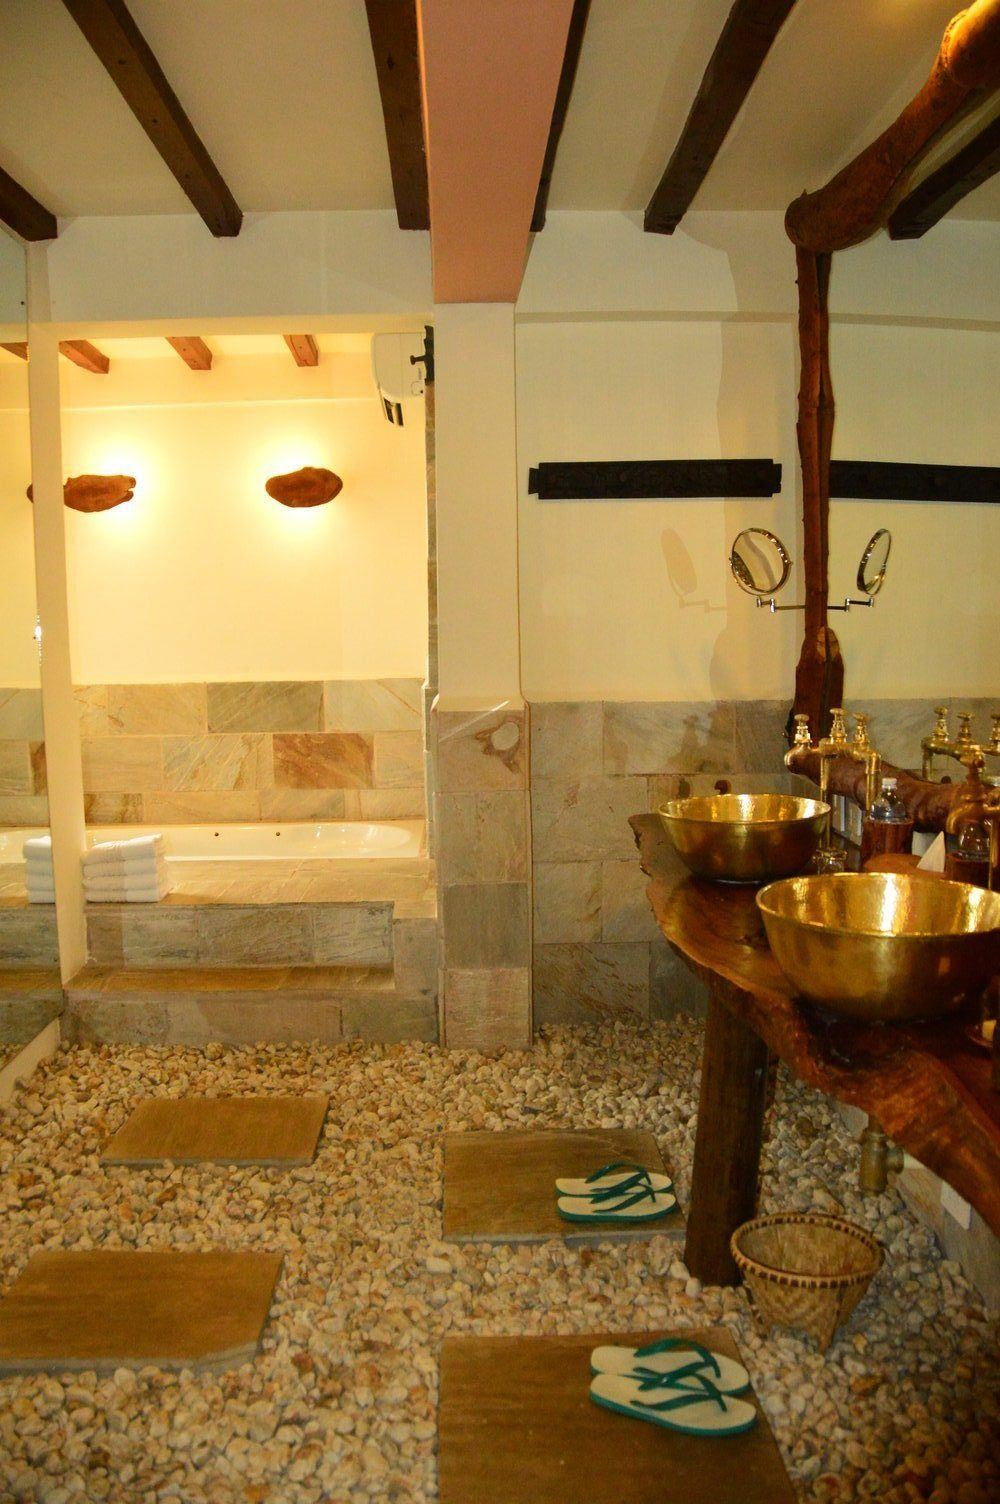 bathroom at dwarika's resort dhulikhel